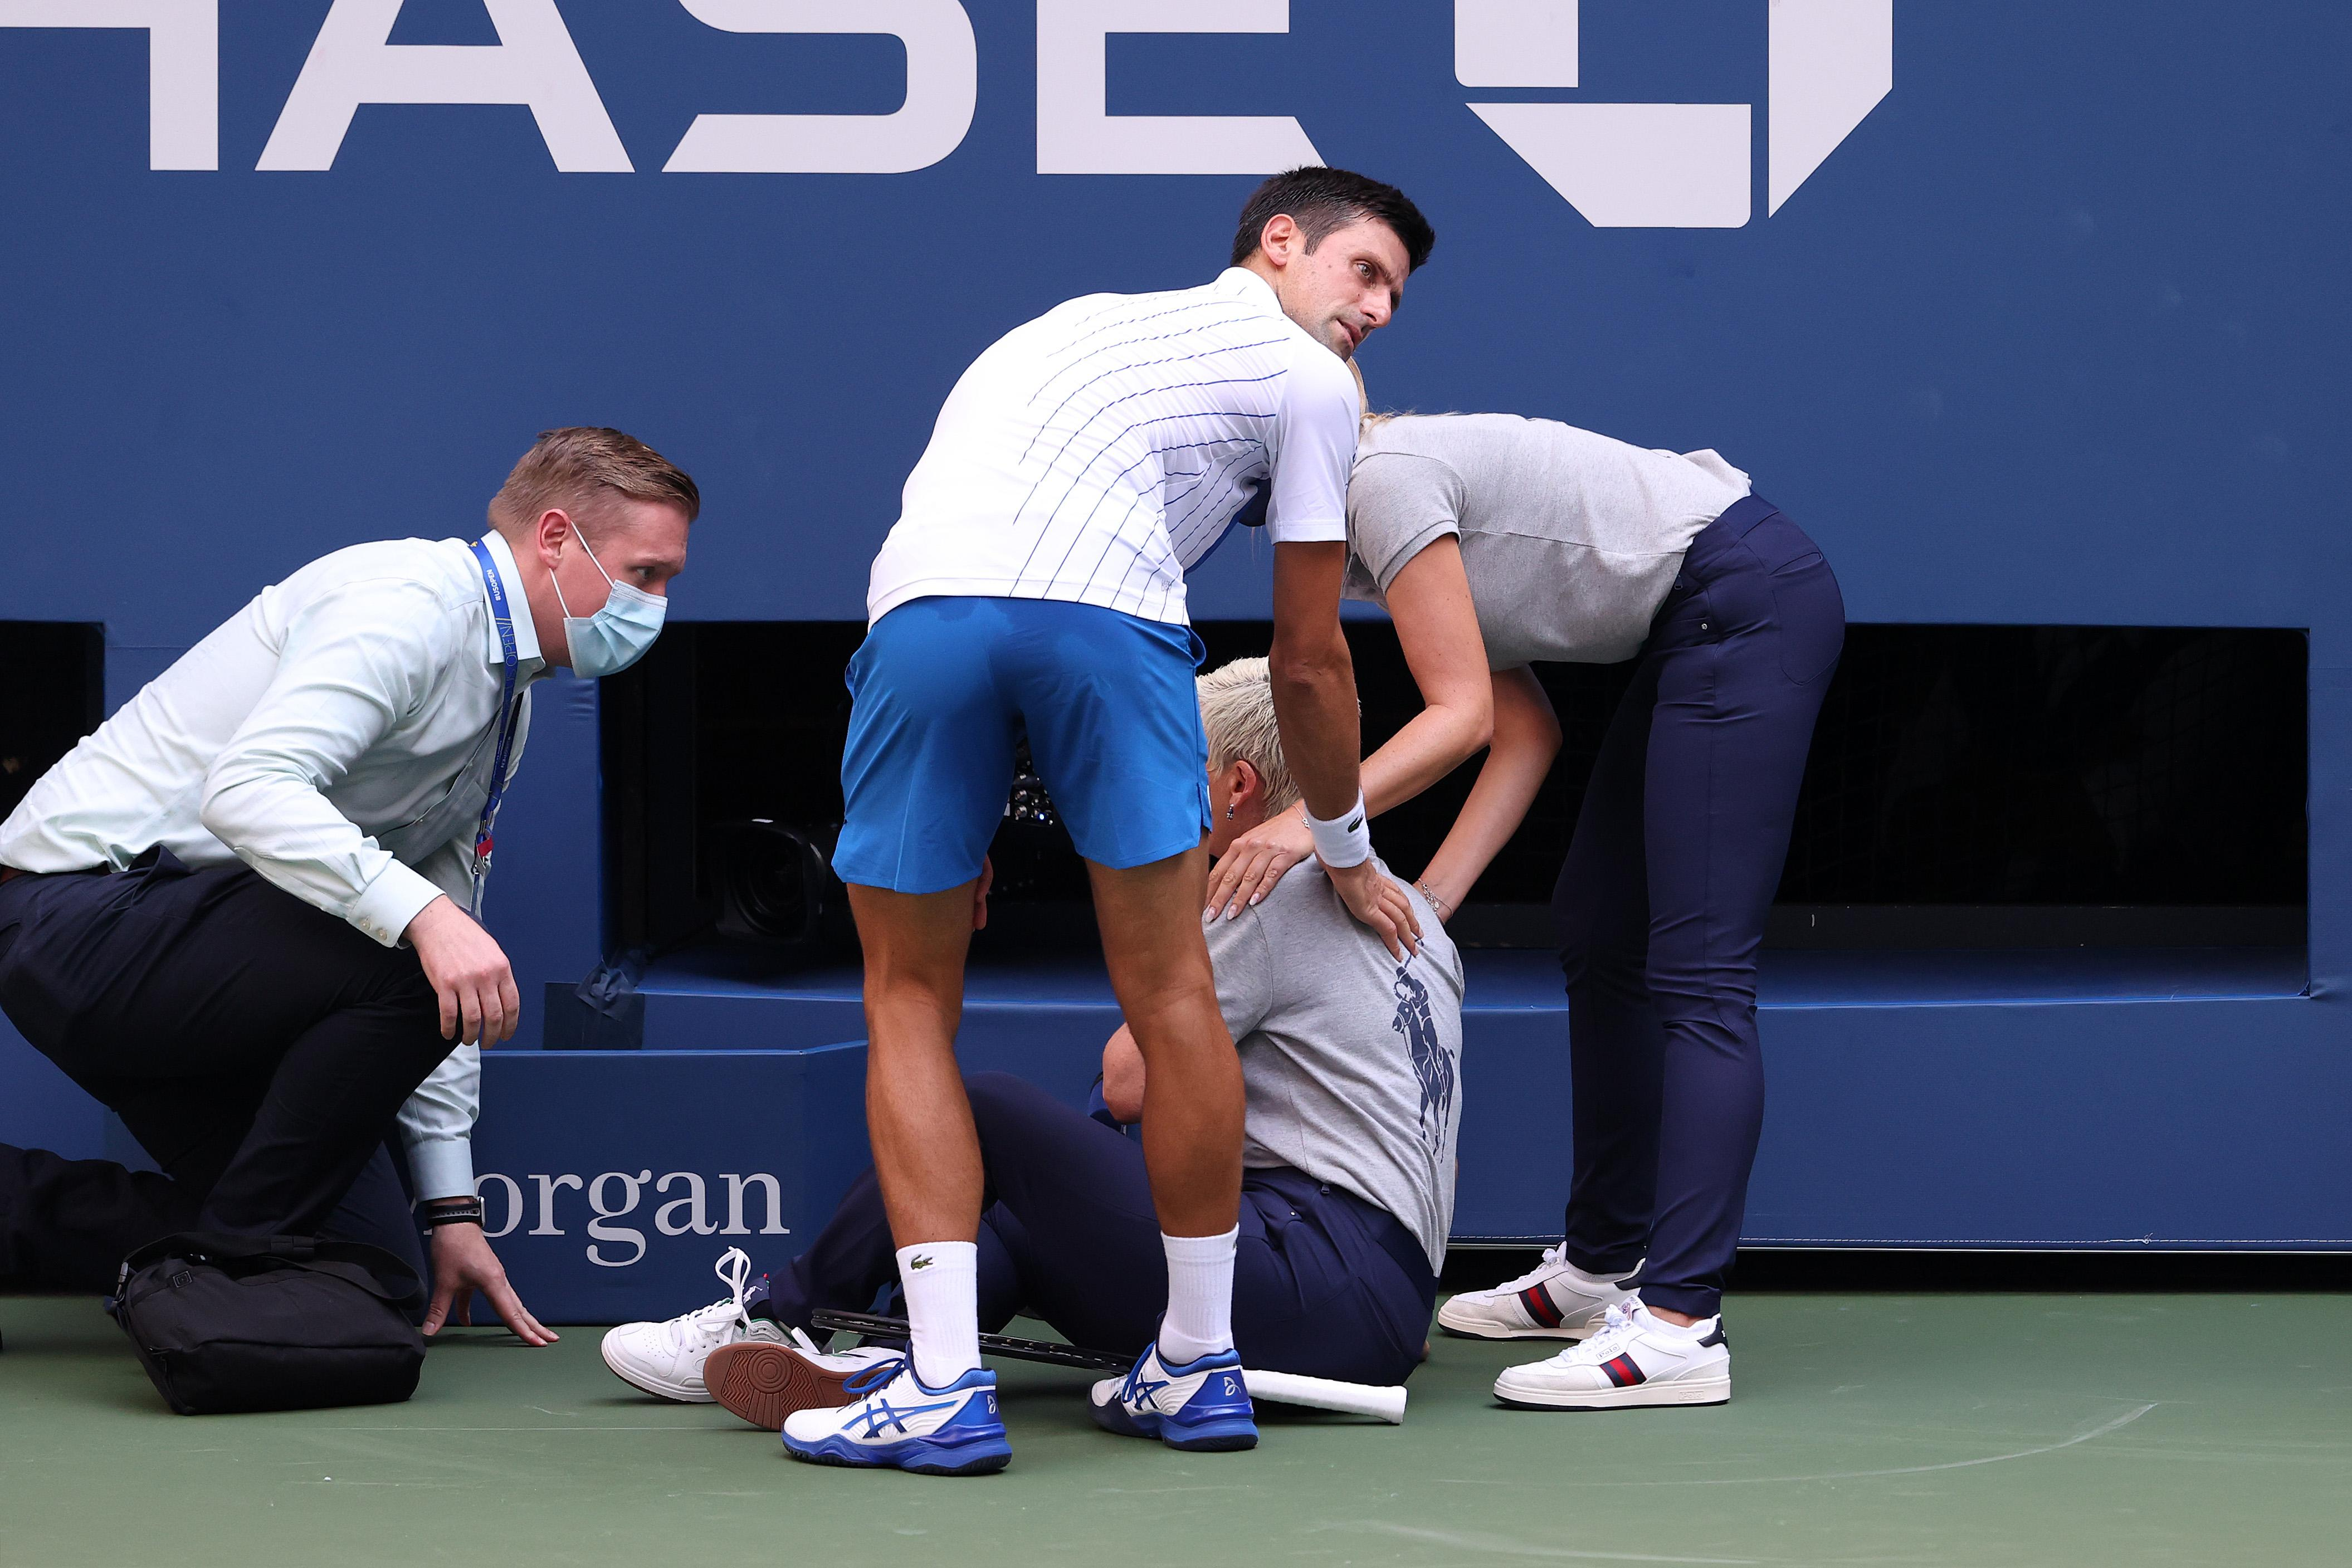 Us Open Novak Djokovic Out On Default After Hitting Line Judge